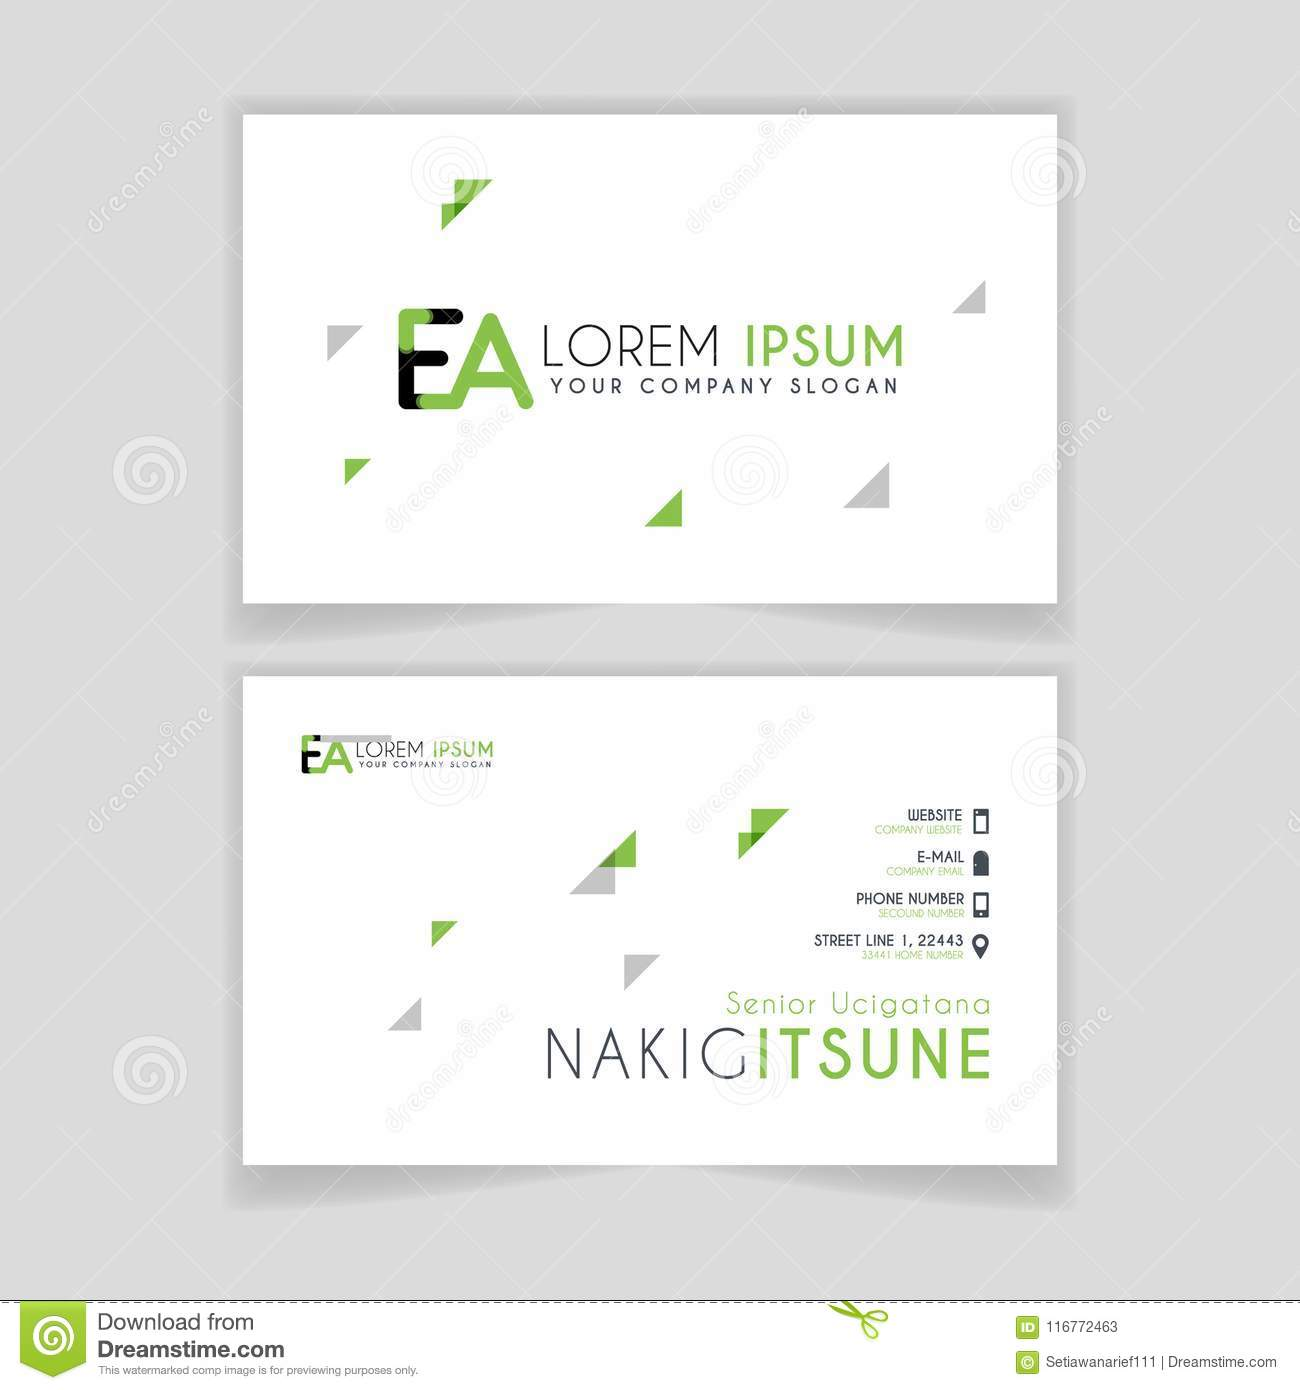 Simple Business Card With Initial Letter EA Rounded Edges